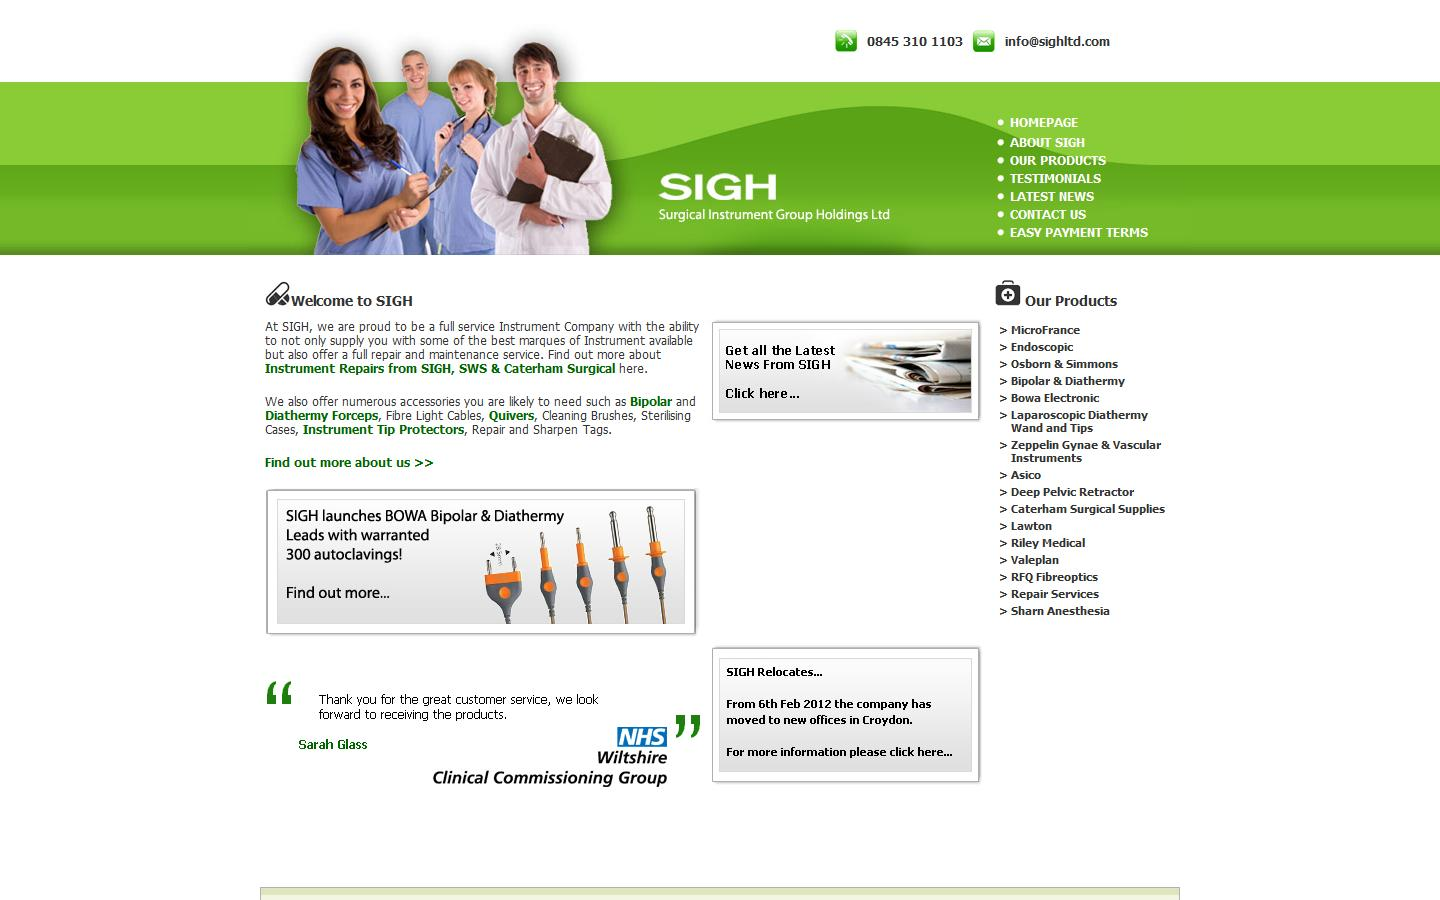 Surgical Instrument Group Holdings Ltd, Surrey, CR0 2DN